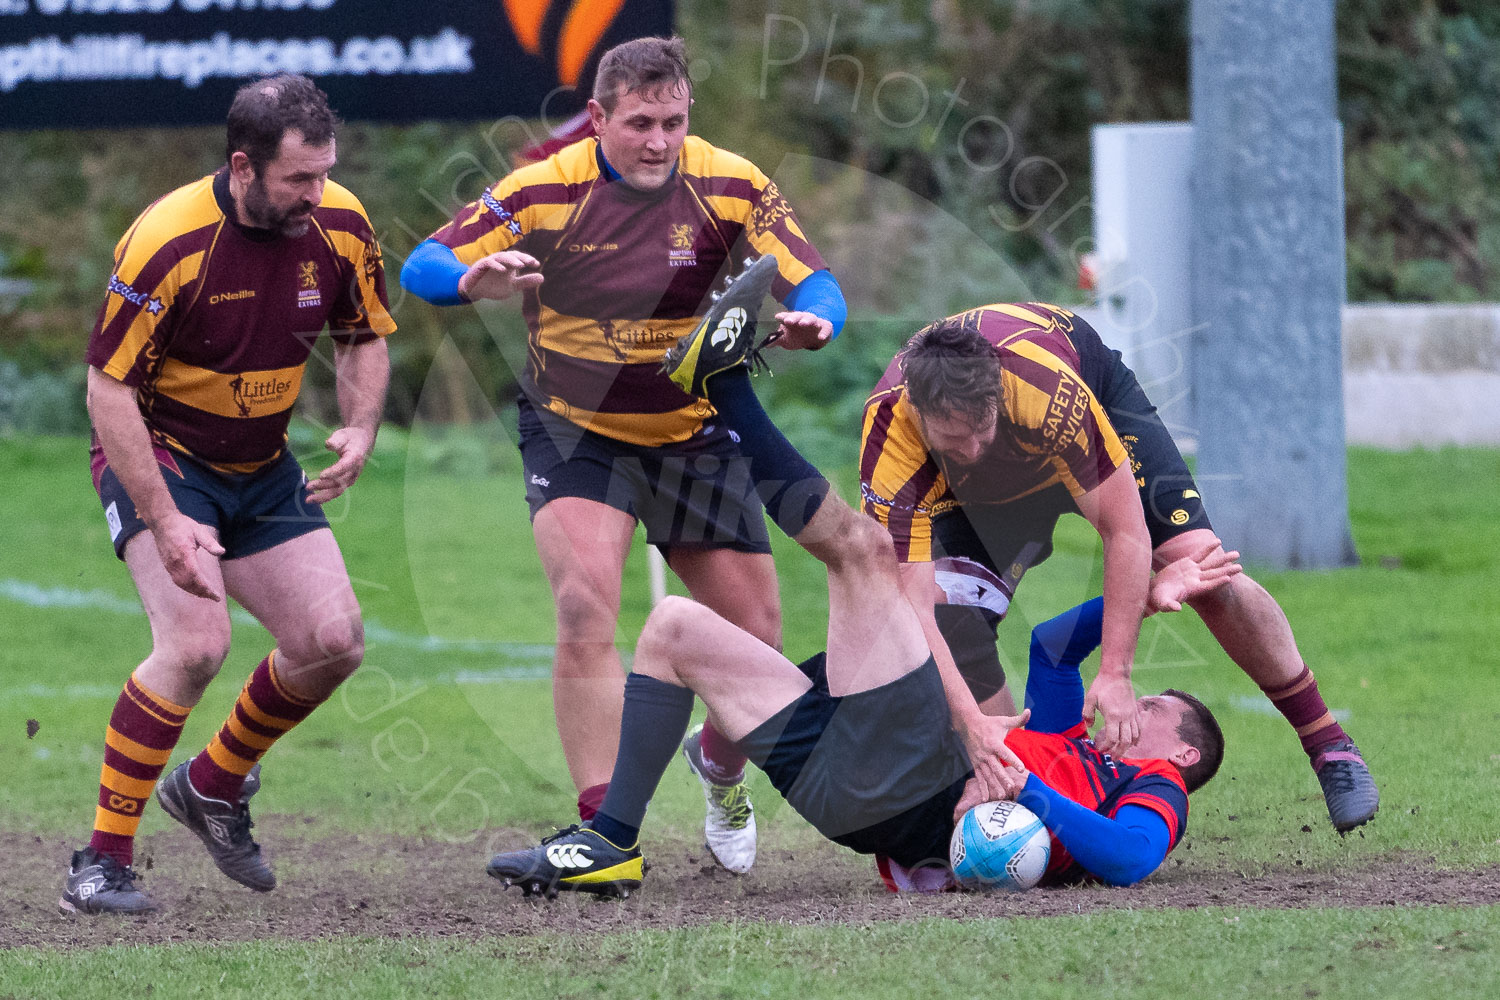 20181027 Amp Extras vs St Neots 2nd XV #2331